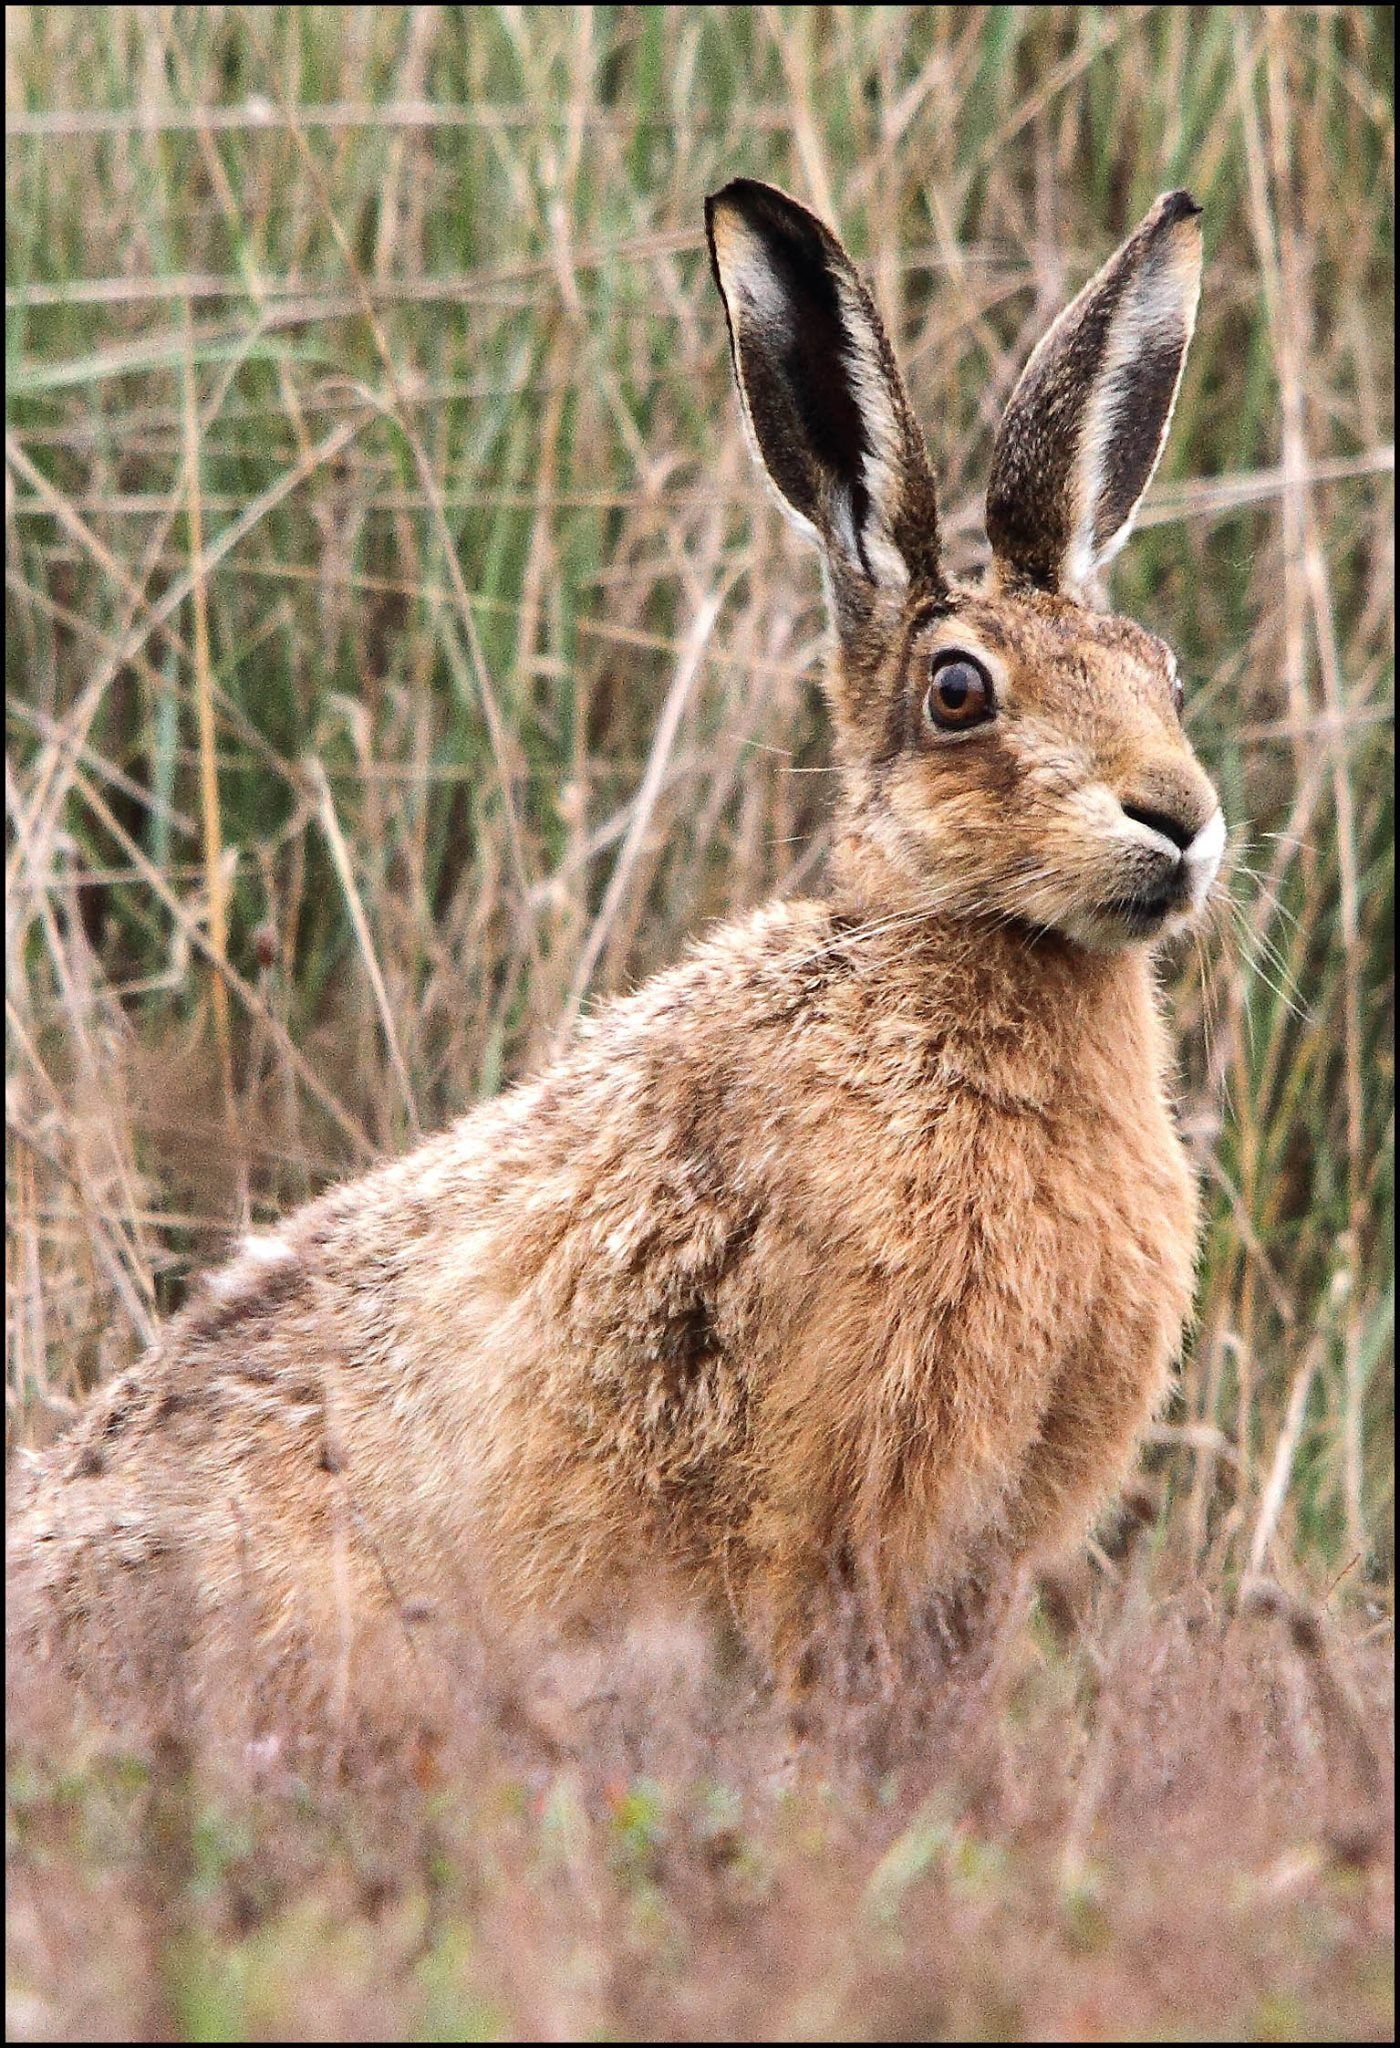 Pin by Christine SchatterRenaud on Hares photos Wild